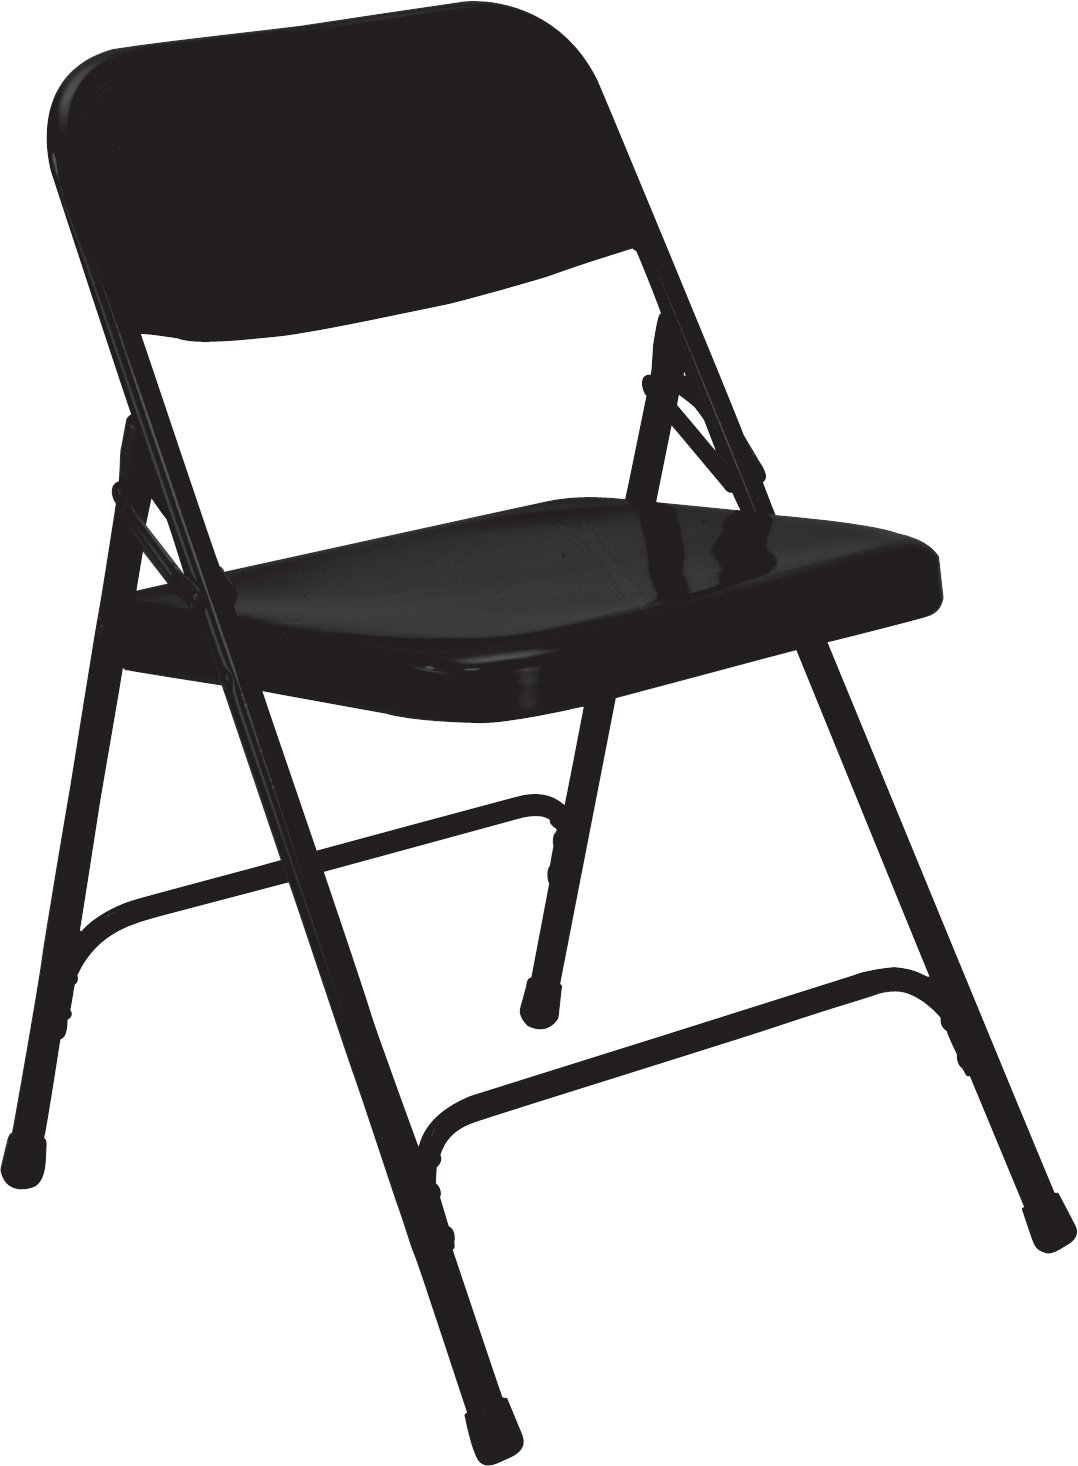 National Public Seating Folding Chair - 18-1/4 X20-1/4 X29-1/2 - Single U-Brace - Blue - Lot of 4